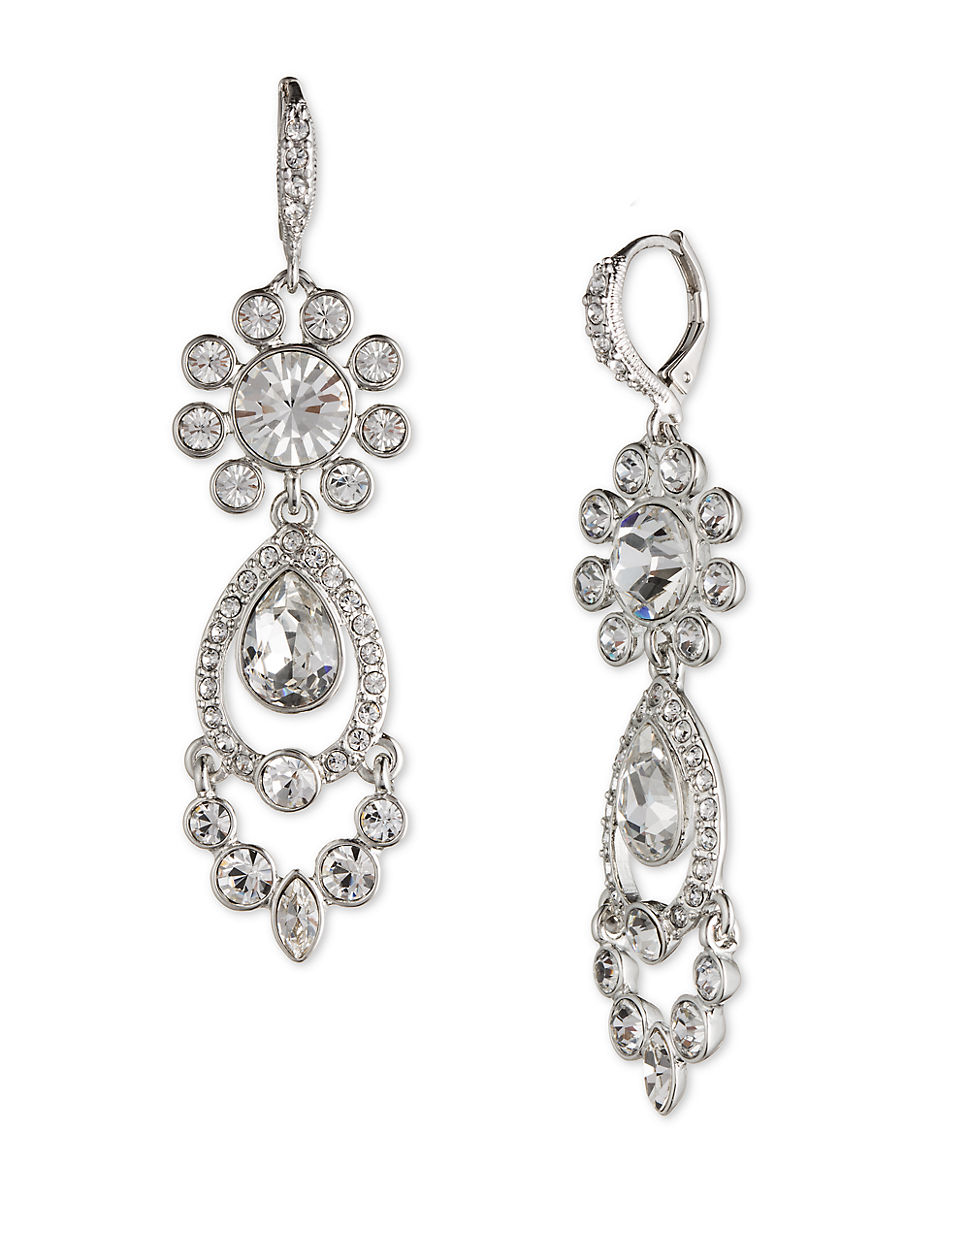 givenchy silver tone chandelier earrings in